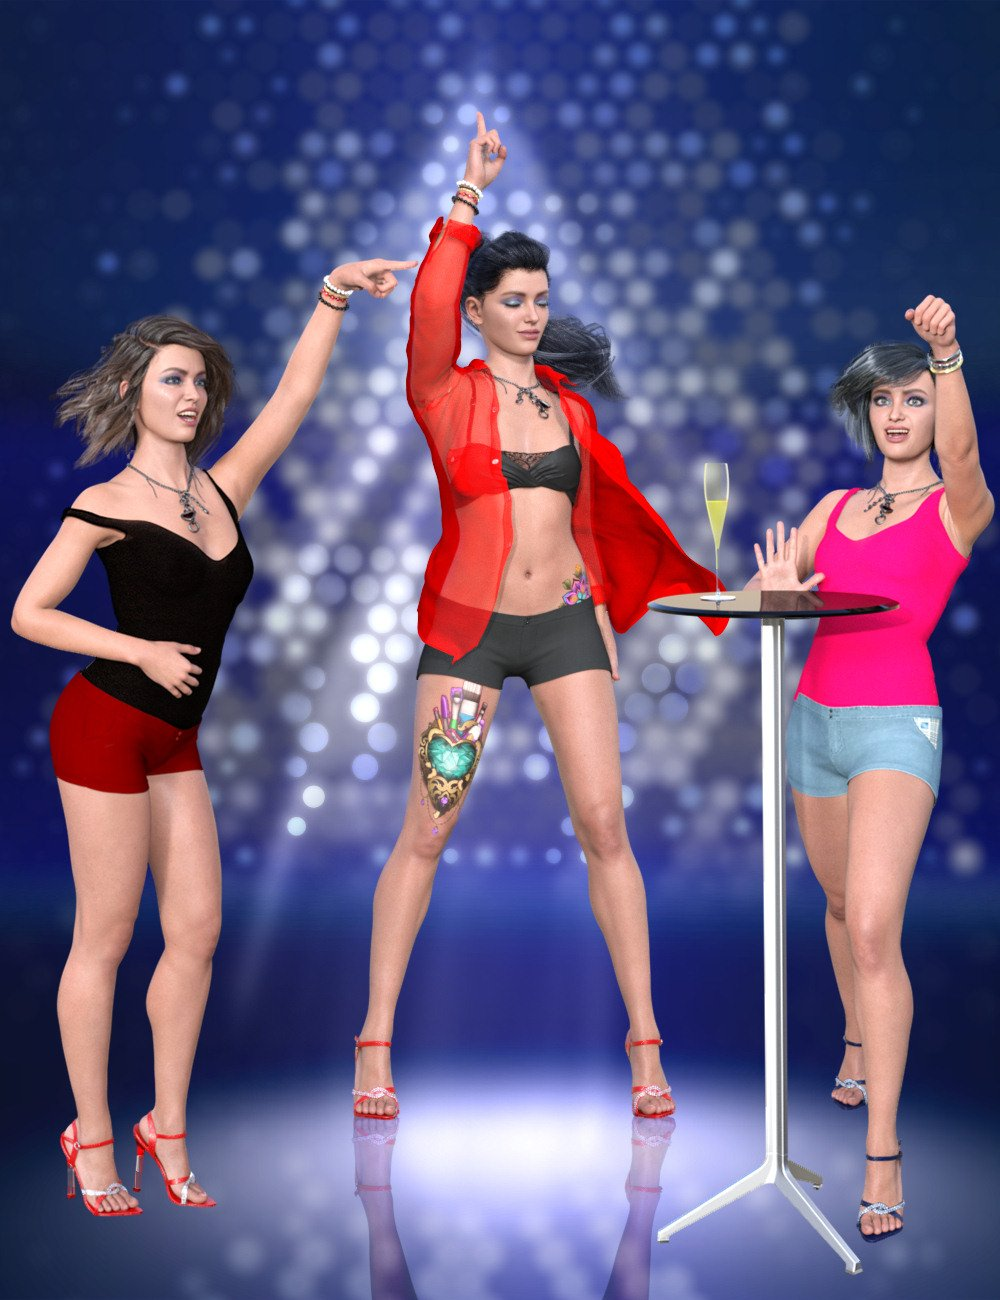 Let's Dance Poses for Genesis 8 and 8.1 Females by: HongZhuang, 3D Models by Daz 3D